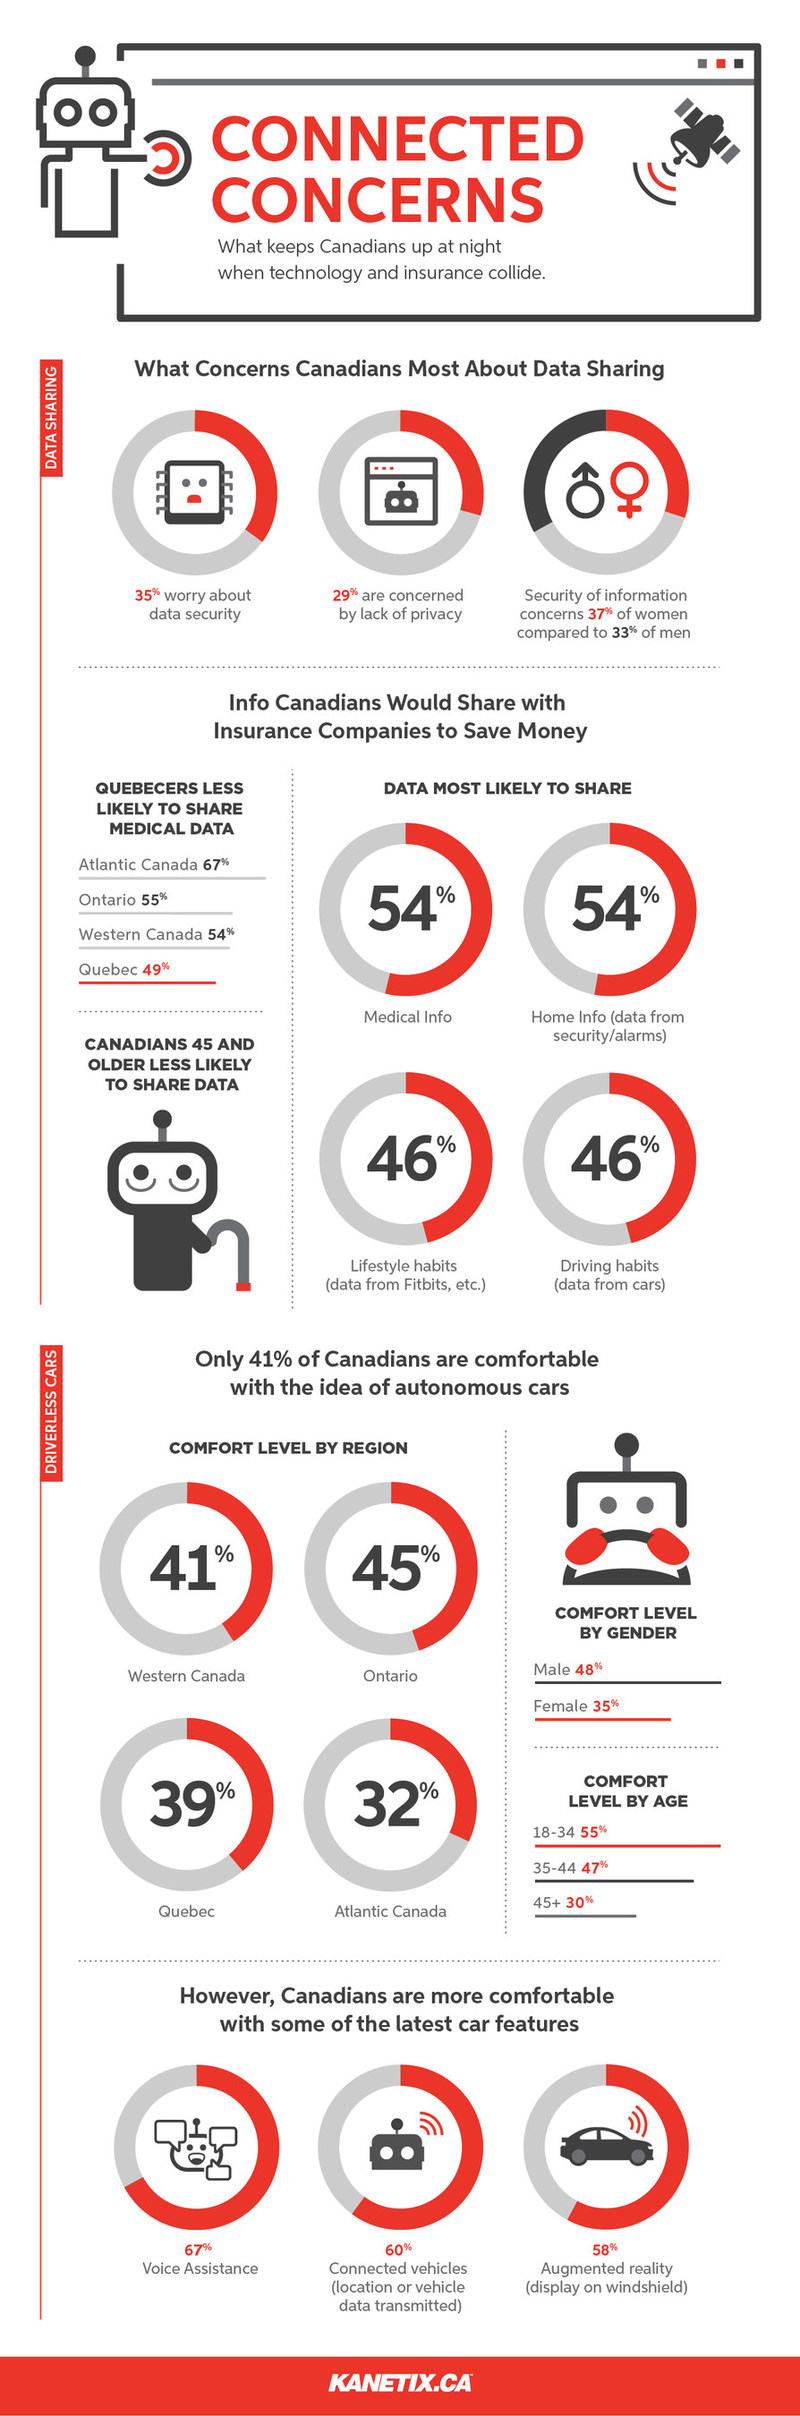 Connected Concerns: What keeps Canadians up at night when technology and insurance collide. (CNW Group/Kanetix.ca)